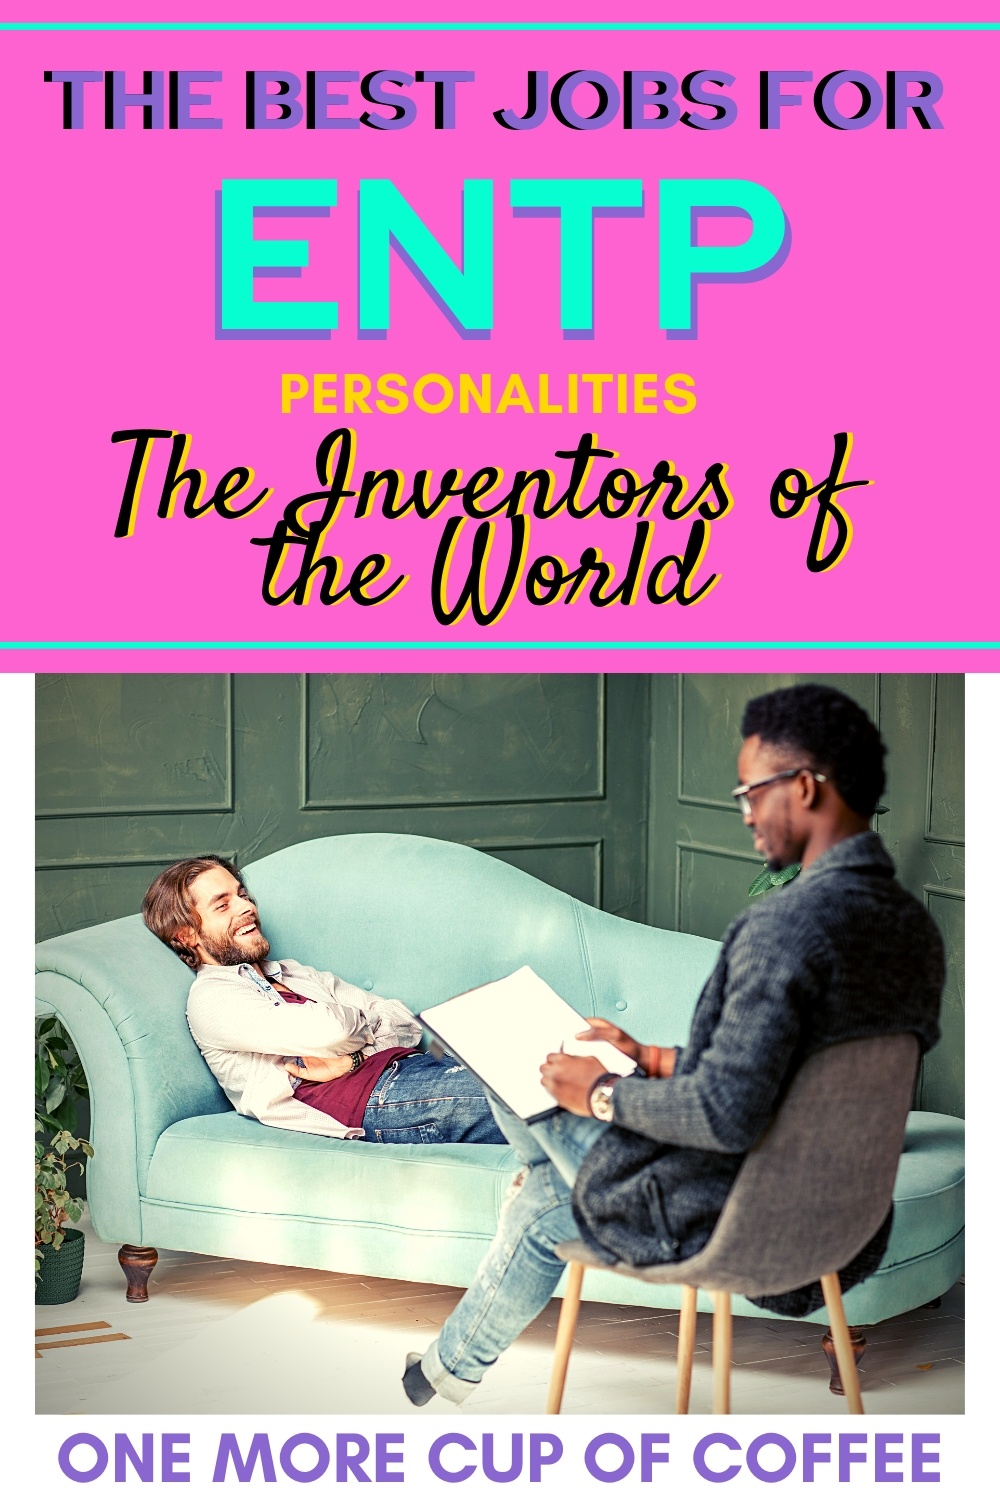 Psychologist in a chair with a patient on the couch representing jobs for ENTP personalities.